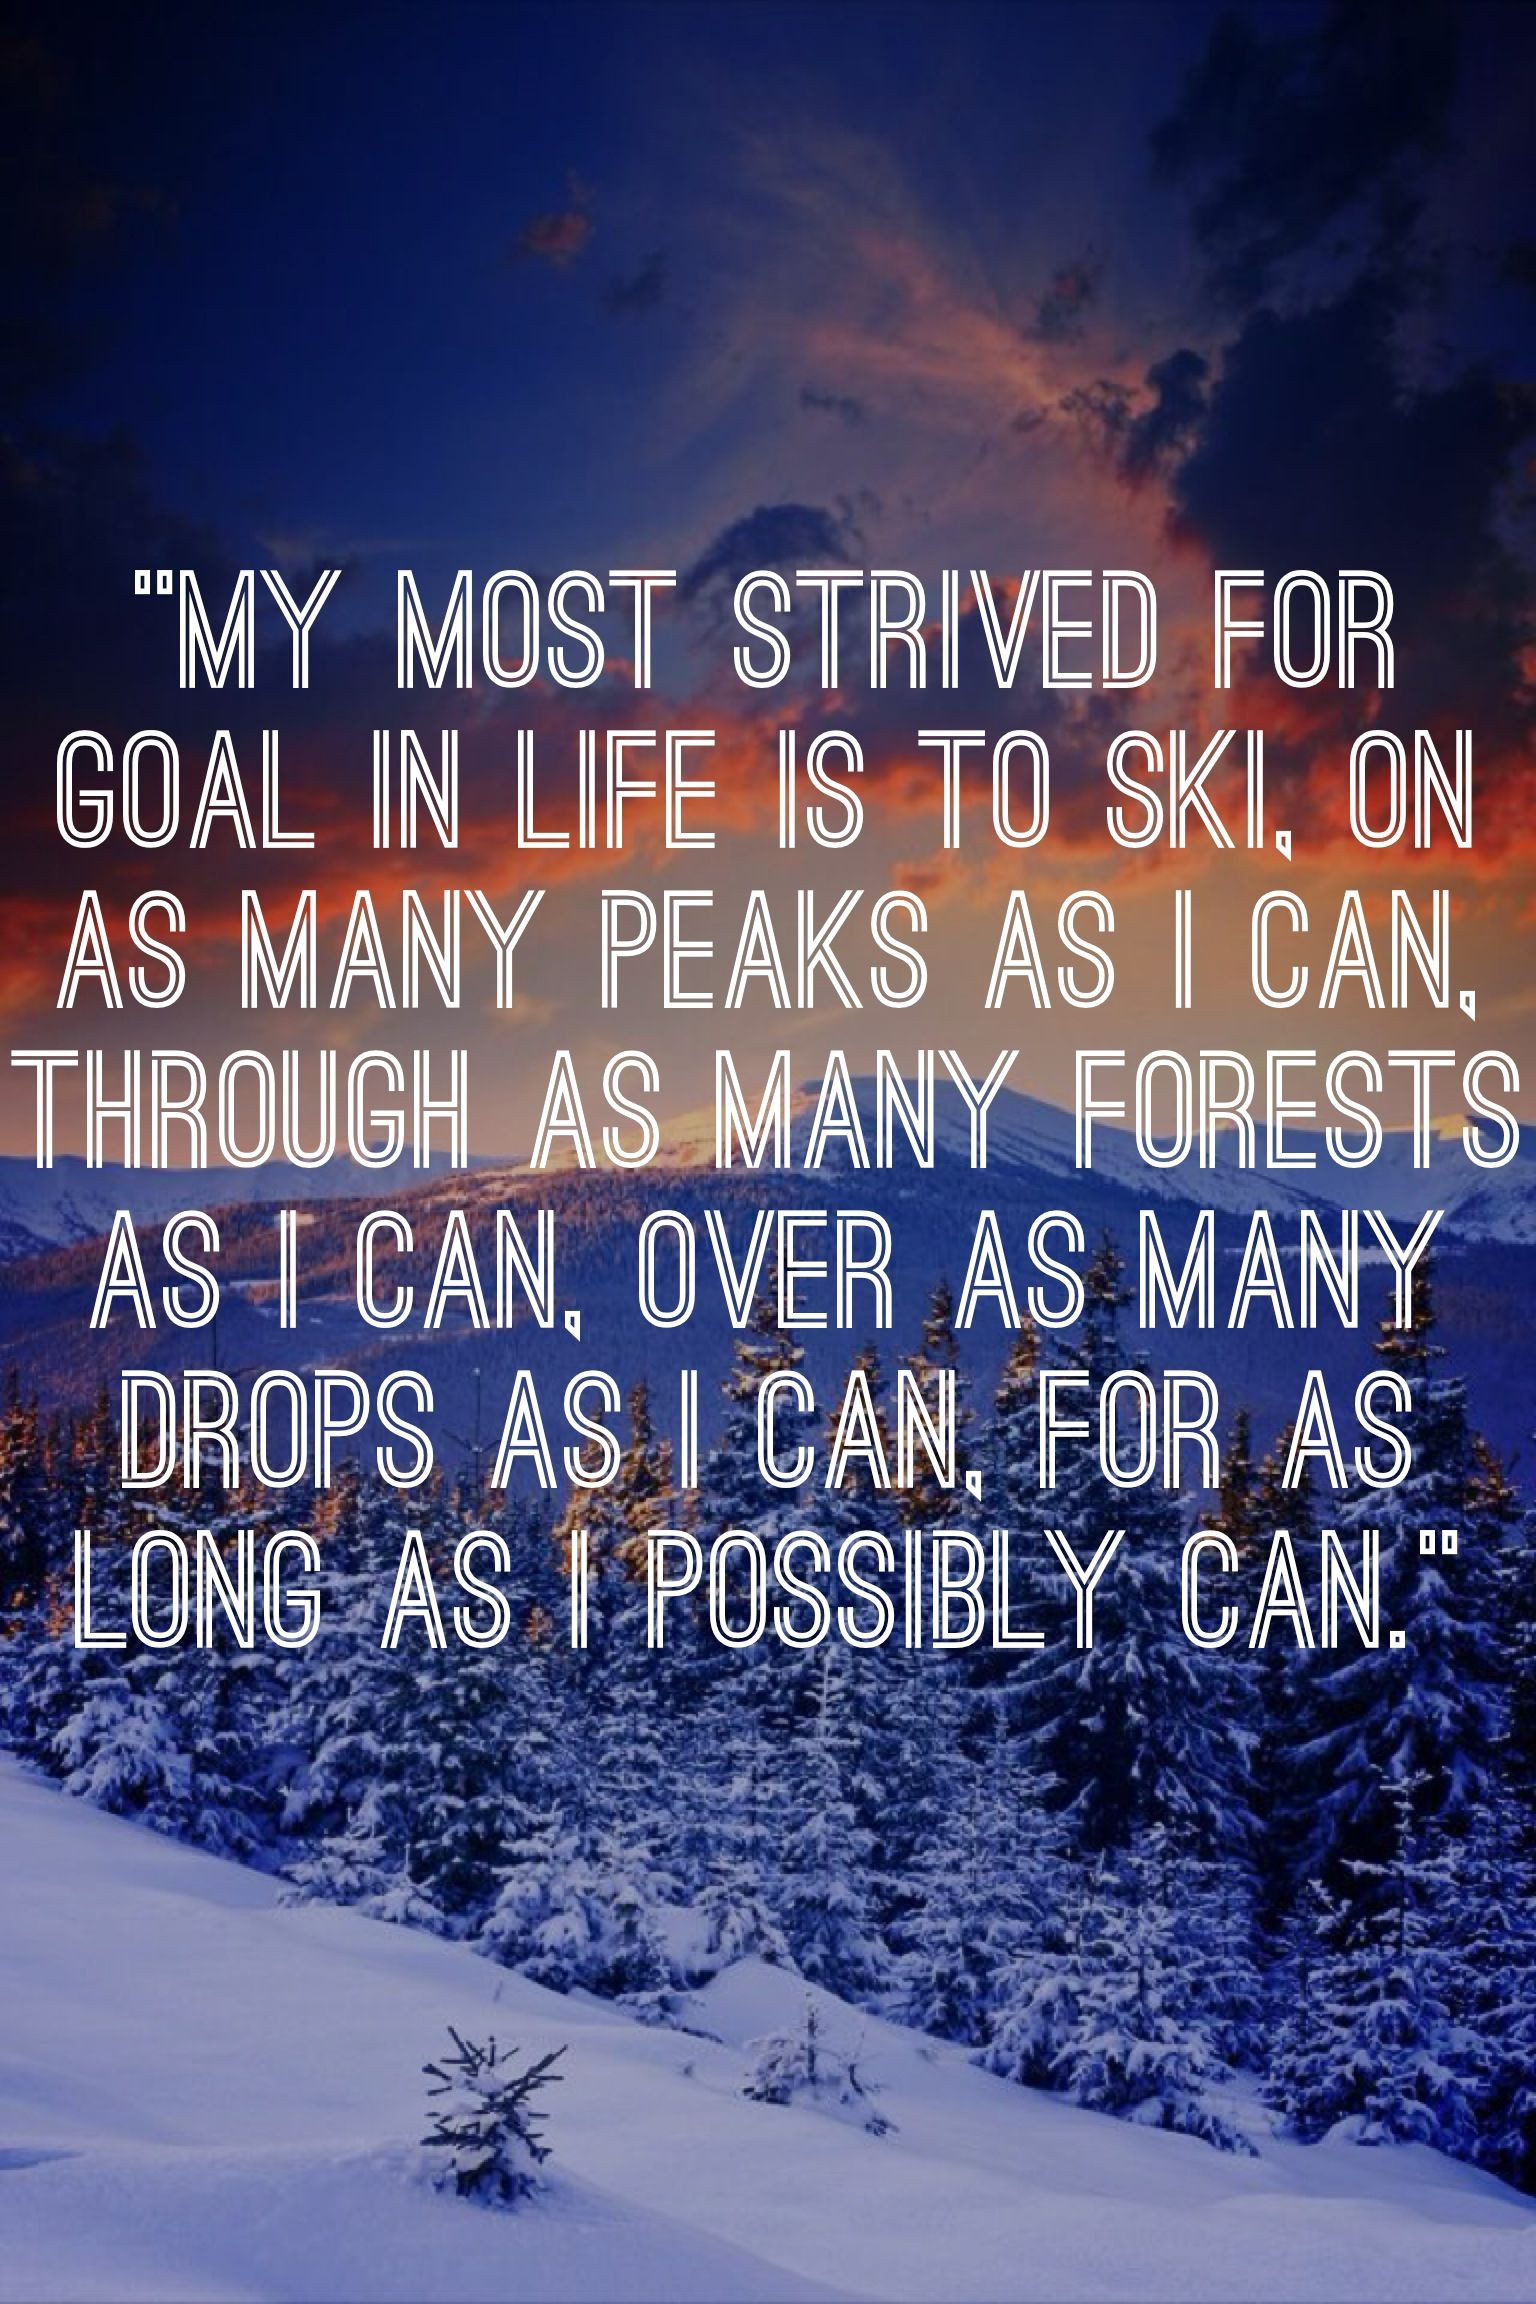 Funny Snowboarding Quotes  Totally SkiQuotes Skiing Quotes Sayings winter